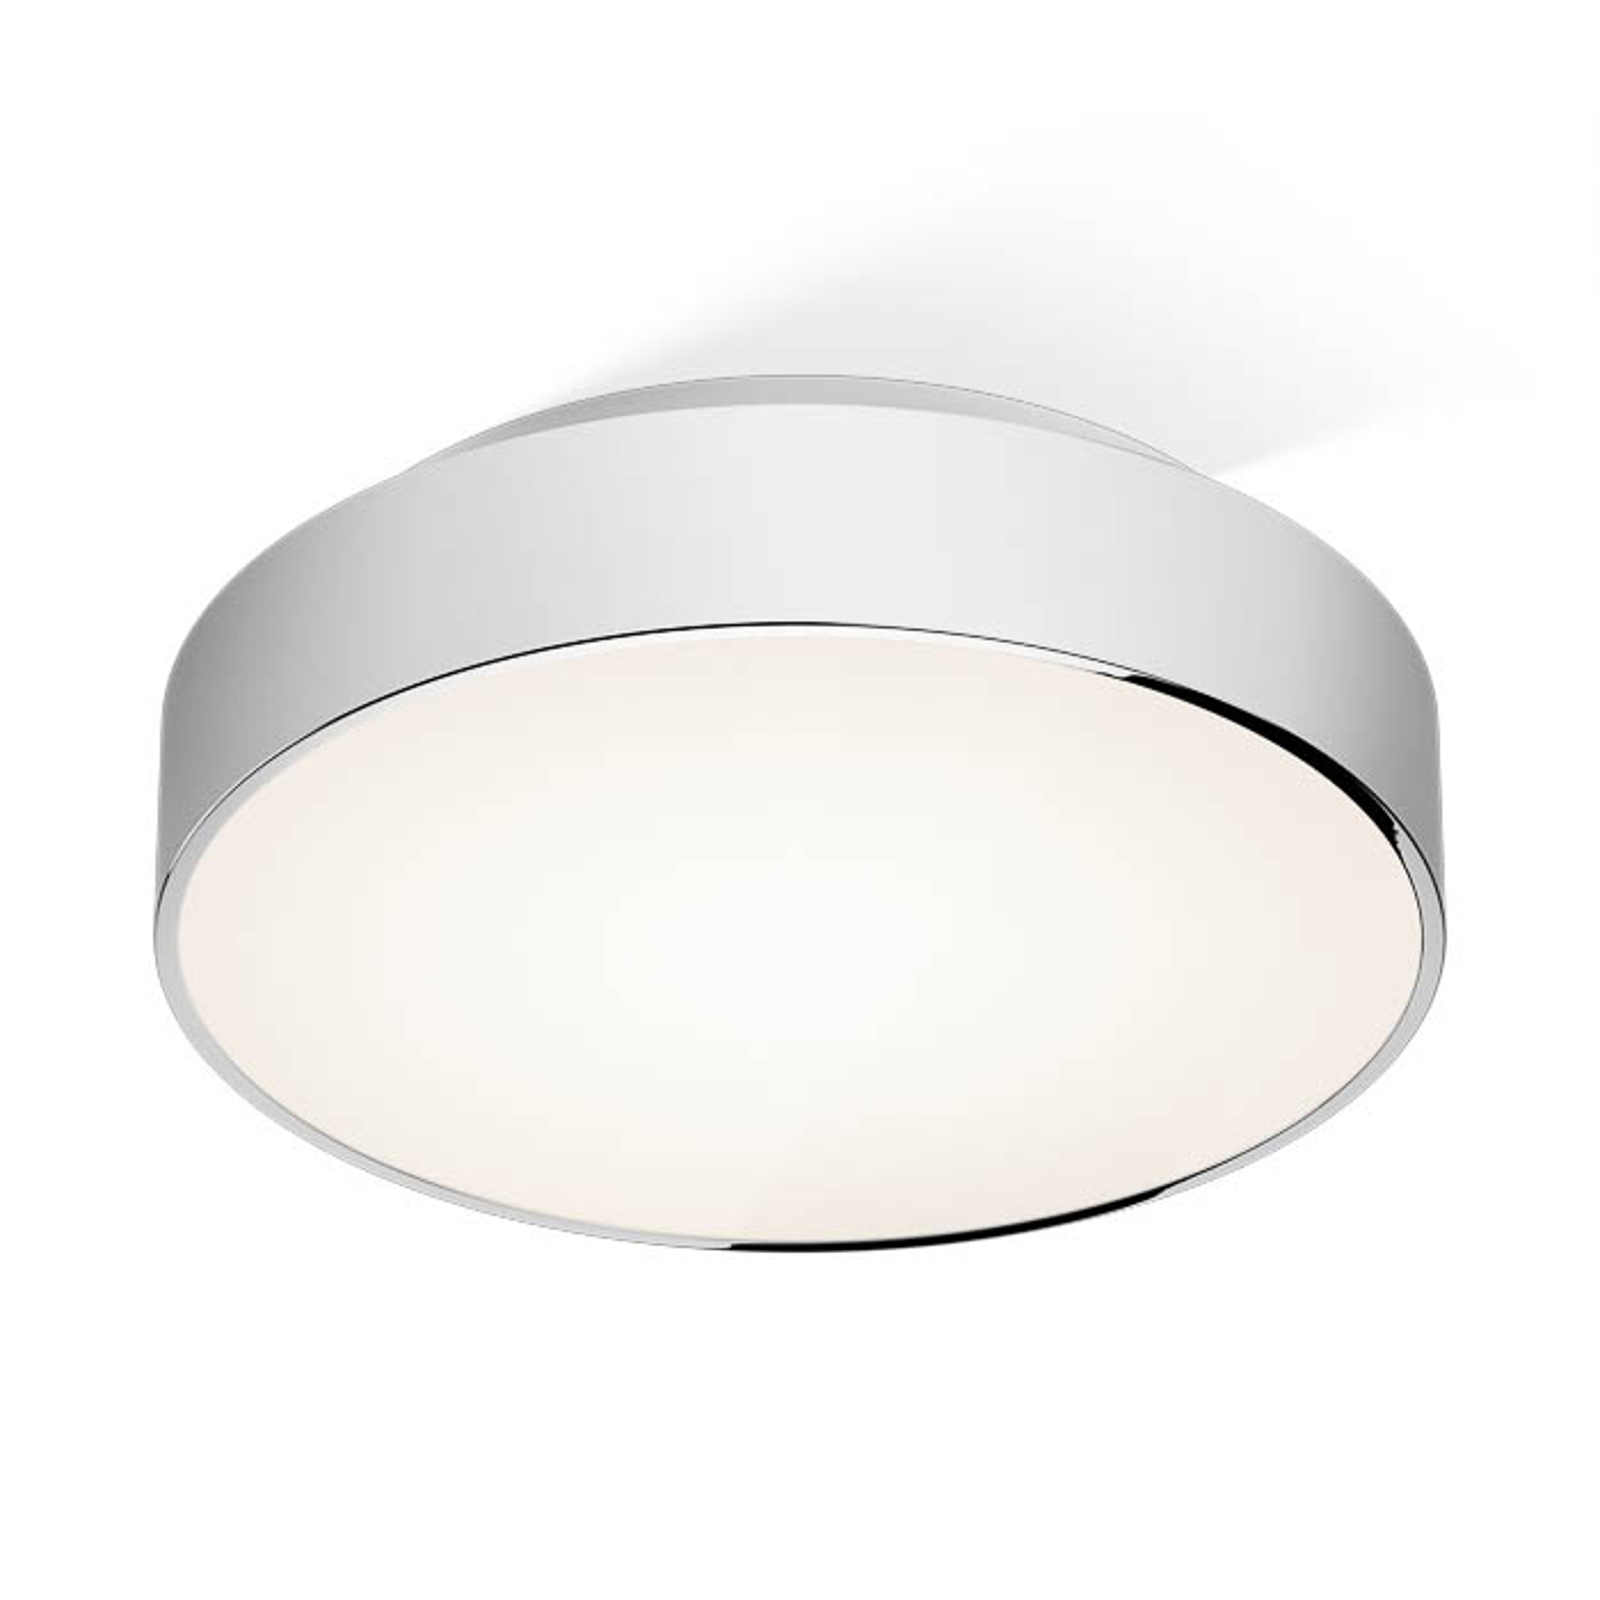 Decor Walther Conect LED-taklampe Ø32cm, krom